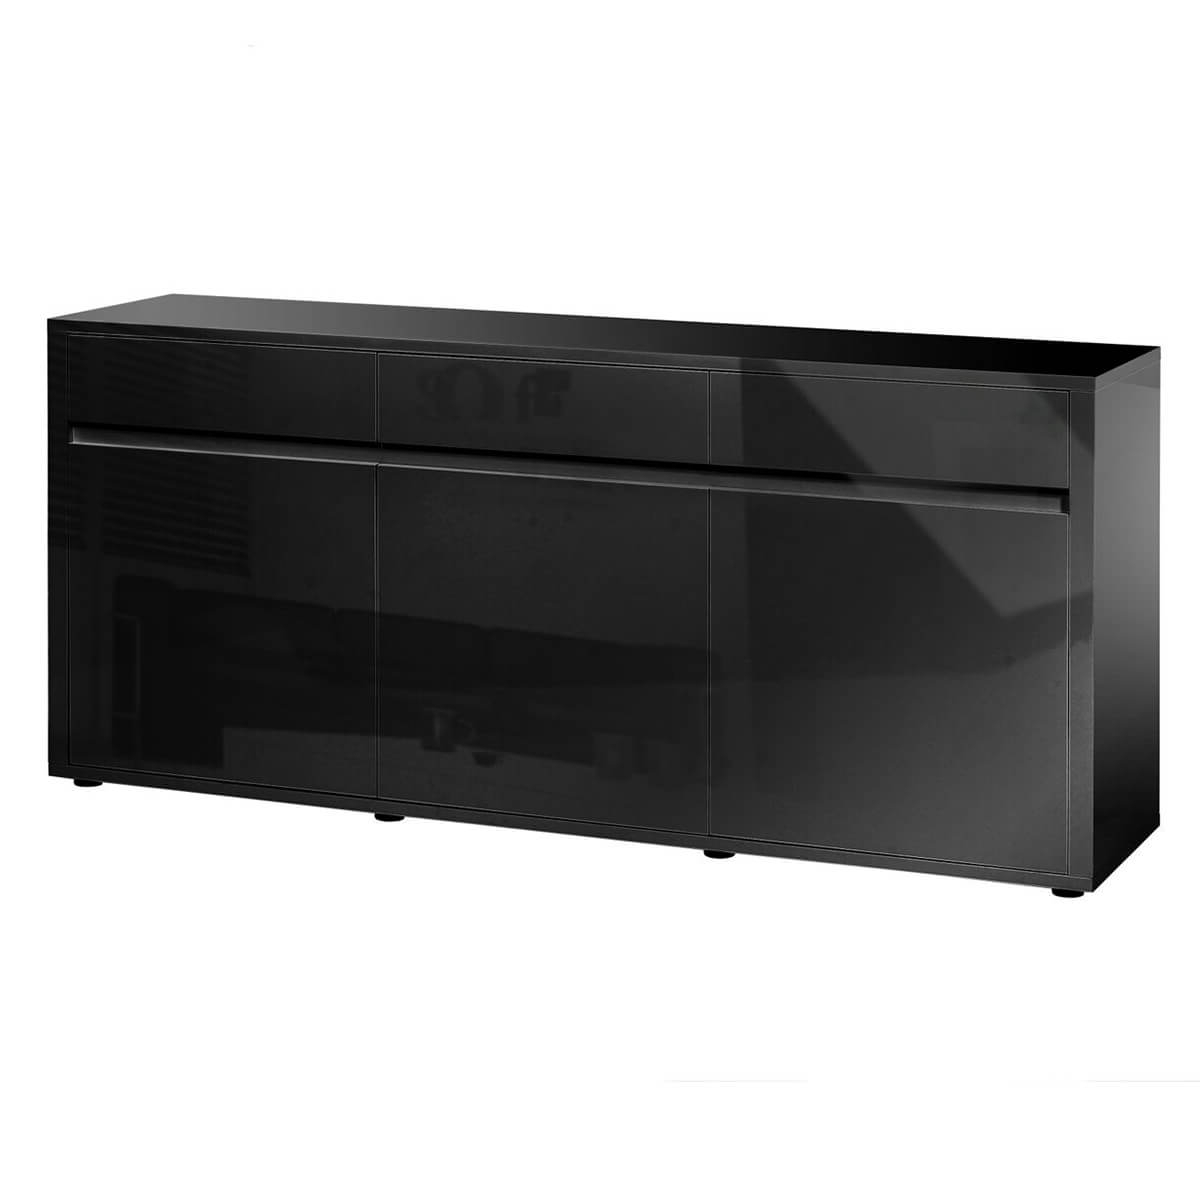 Urbana Black High Gloss Sideboard 3 Door 3 Drawer (View 16 of 20)